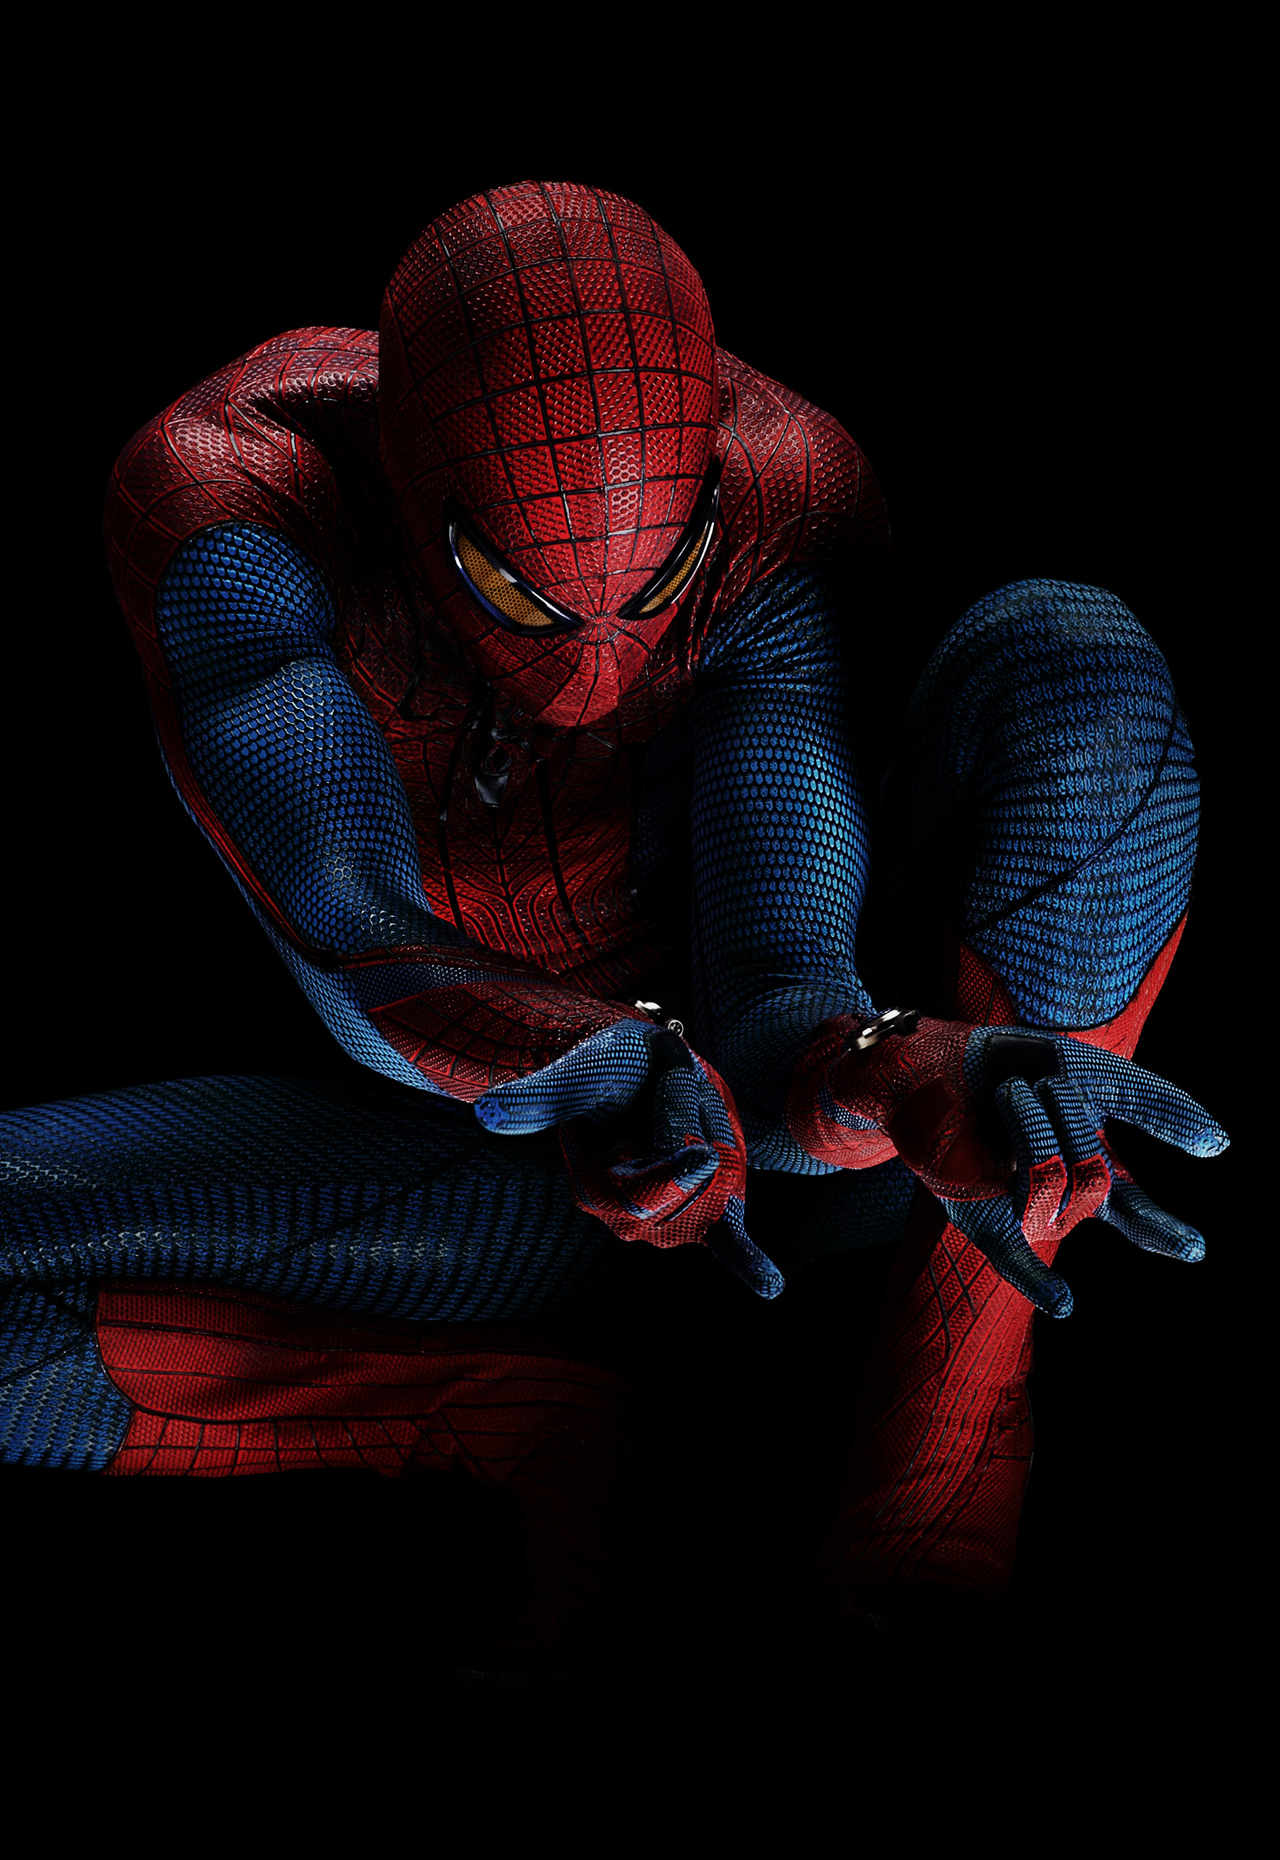 The-Amazing-Spider-Man_2012.jpg